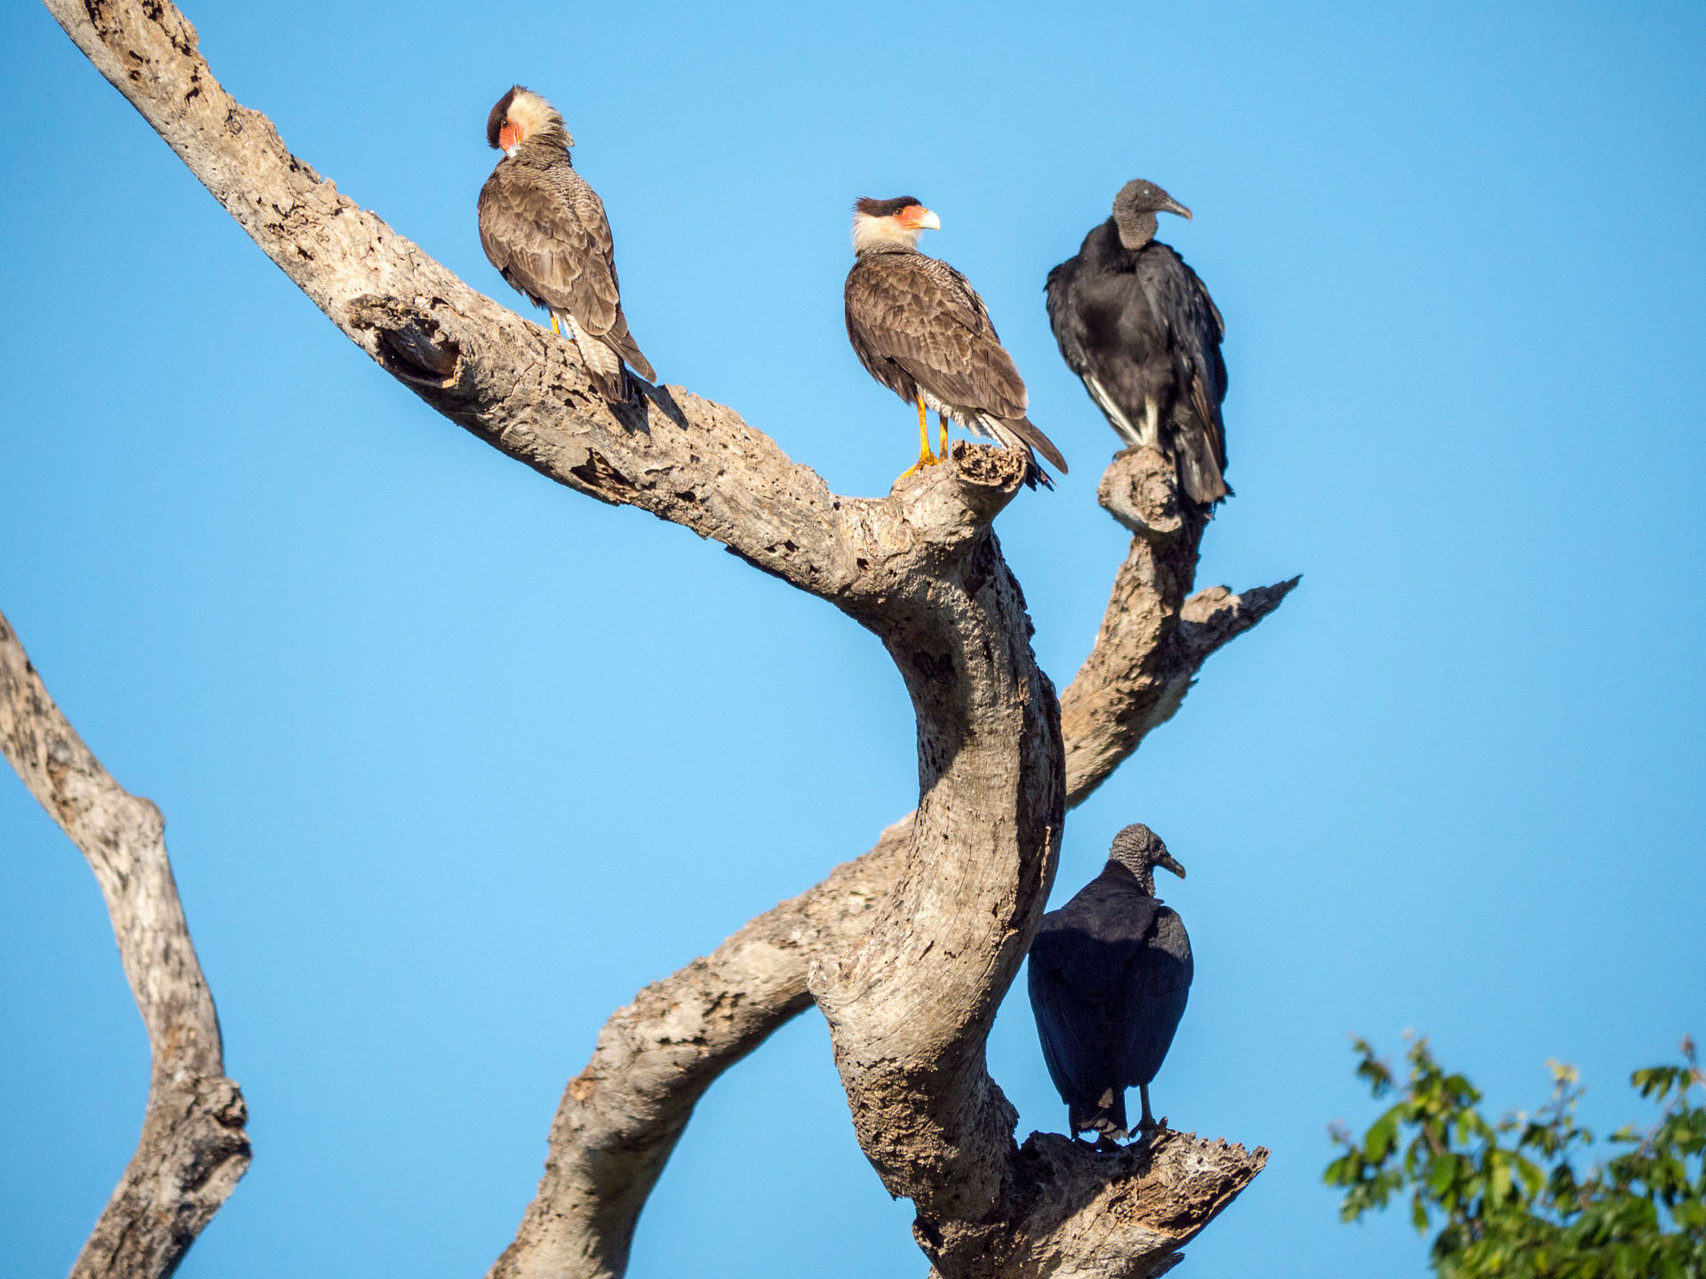 Southern Crested Caracaras and Black Vultures, Pantanal [Brazil 2014]